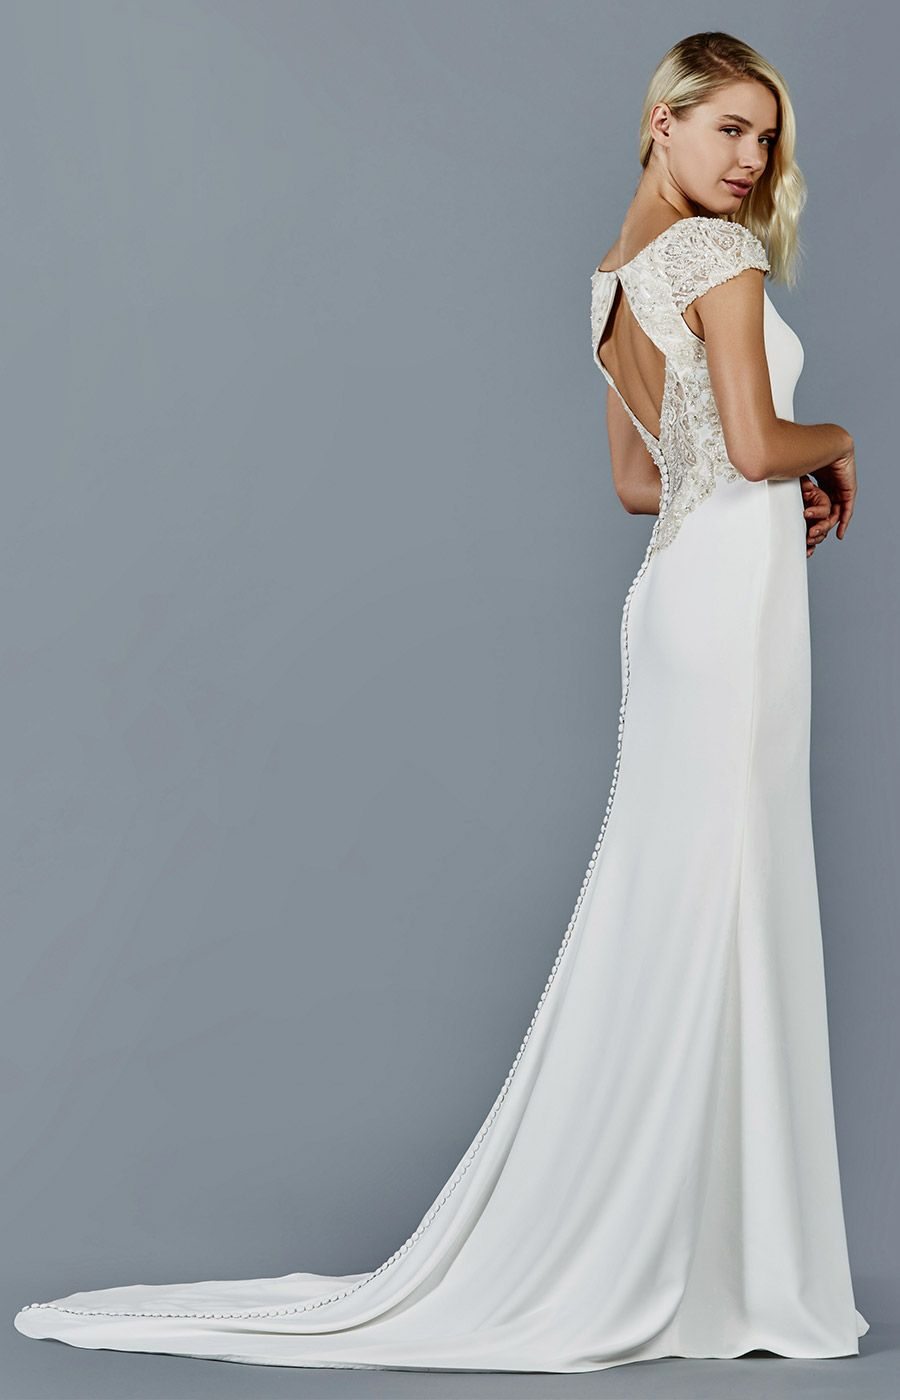 Back detail wedding dress  SOL wedding dress by Kelly Faetanini  Gorgeous train and open back